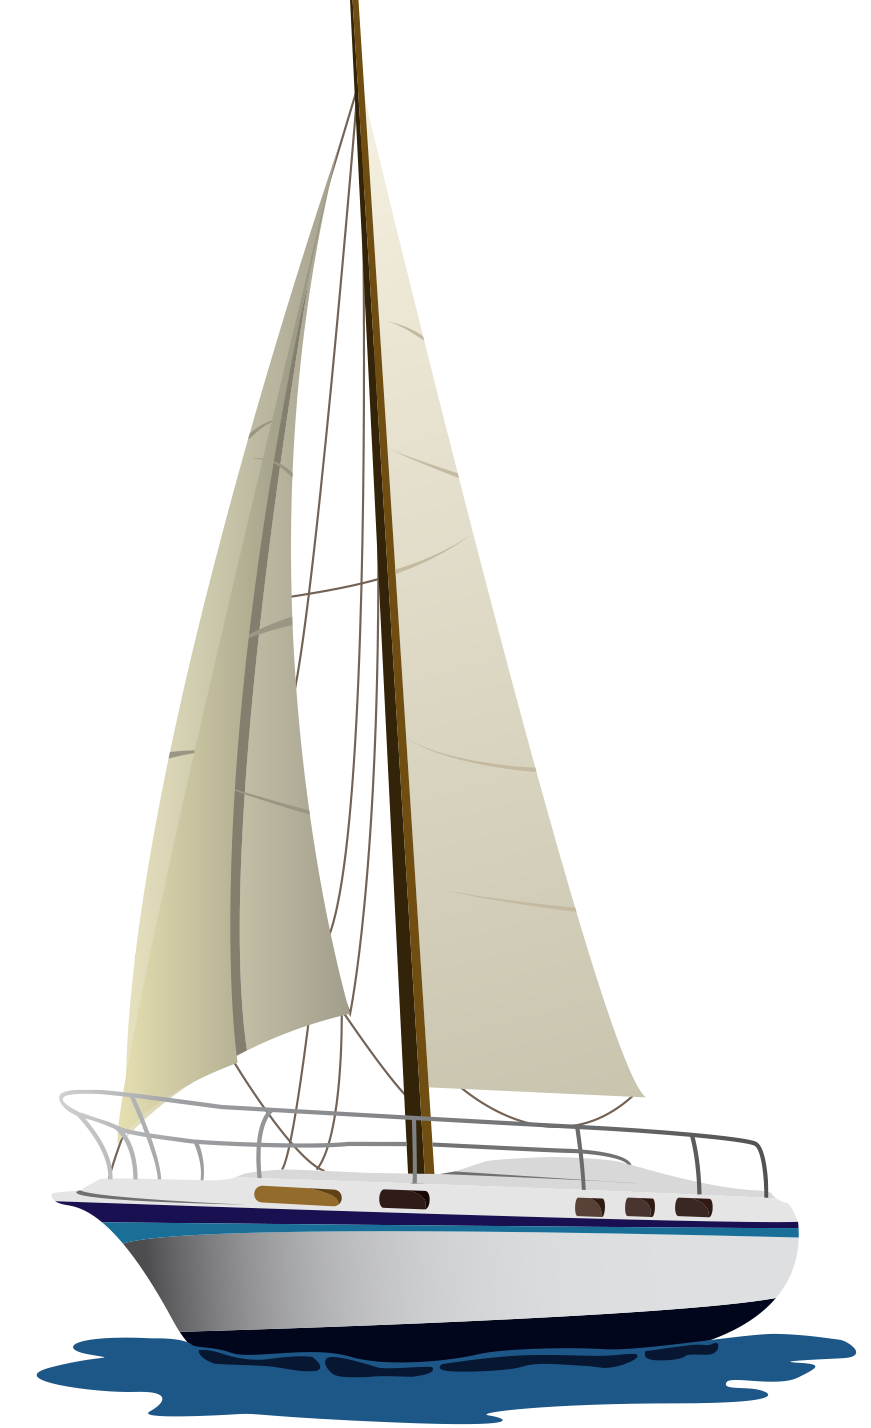 Edward C. Jackle - Sailboat PNG HD